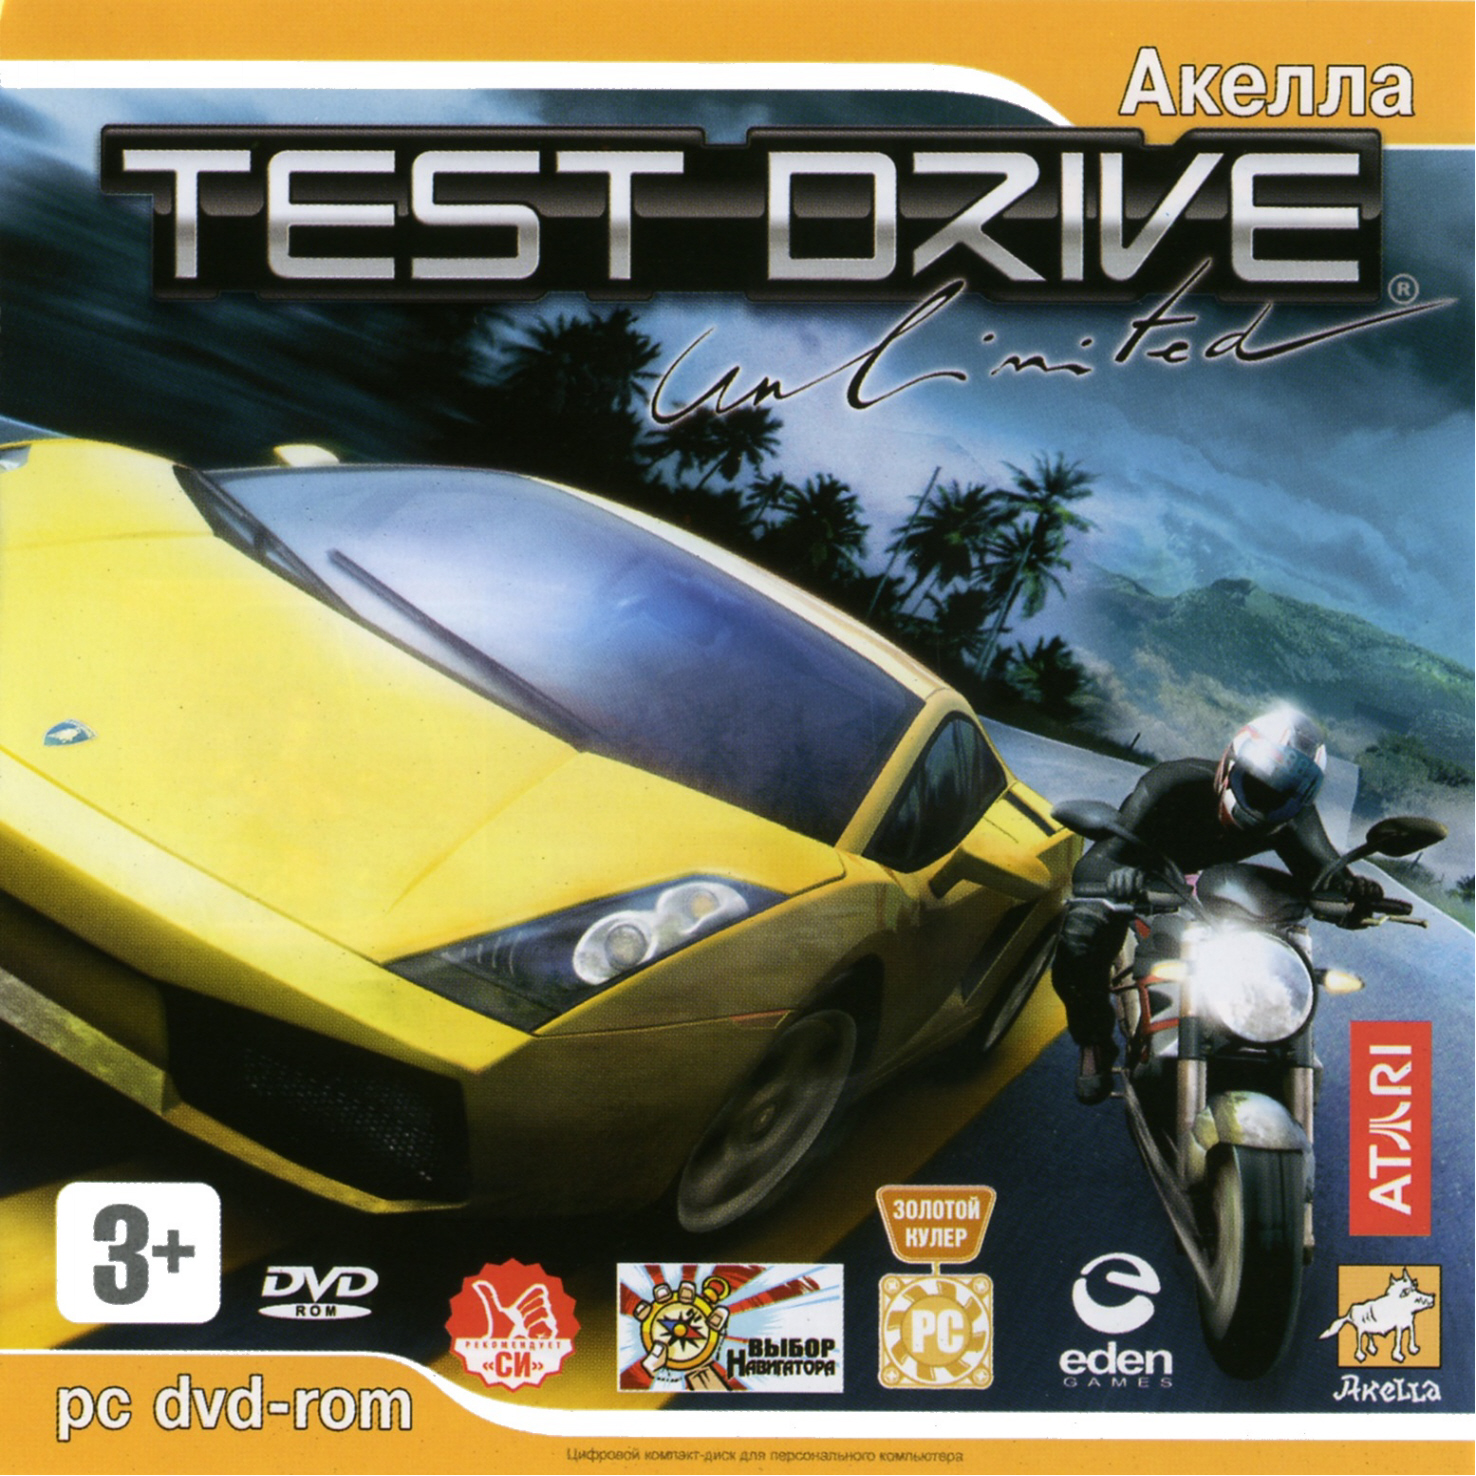 Test drive game porn nude video